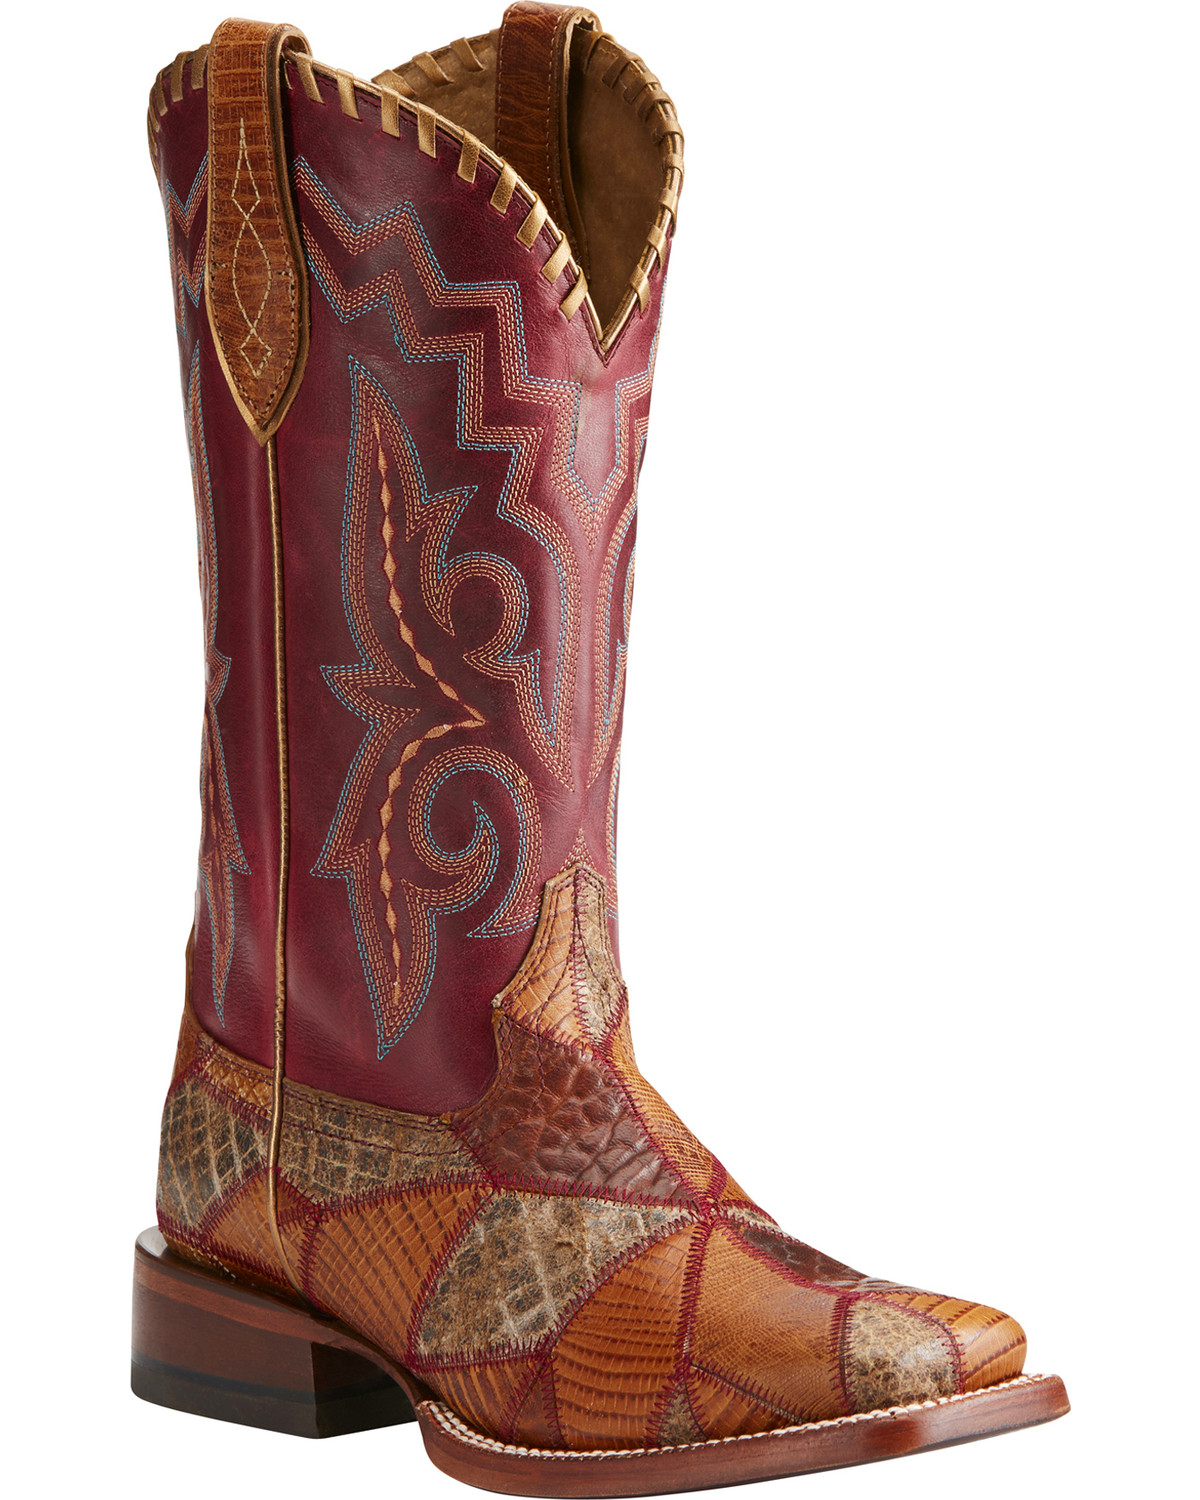 Wonderful Ariat Womenu0026#39;s Round Up Cowgirl Boots - Square Toe - Country Outfitter